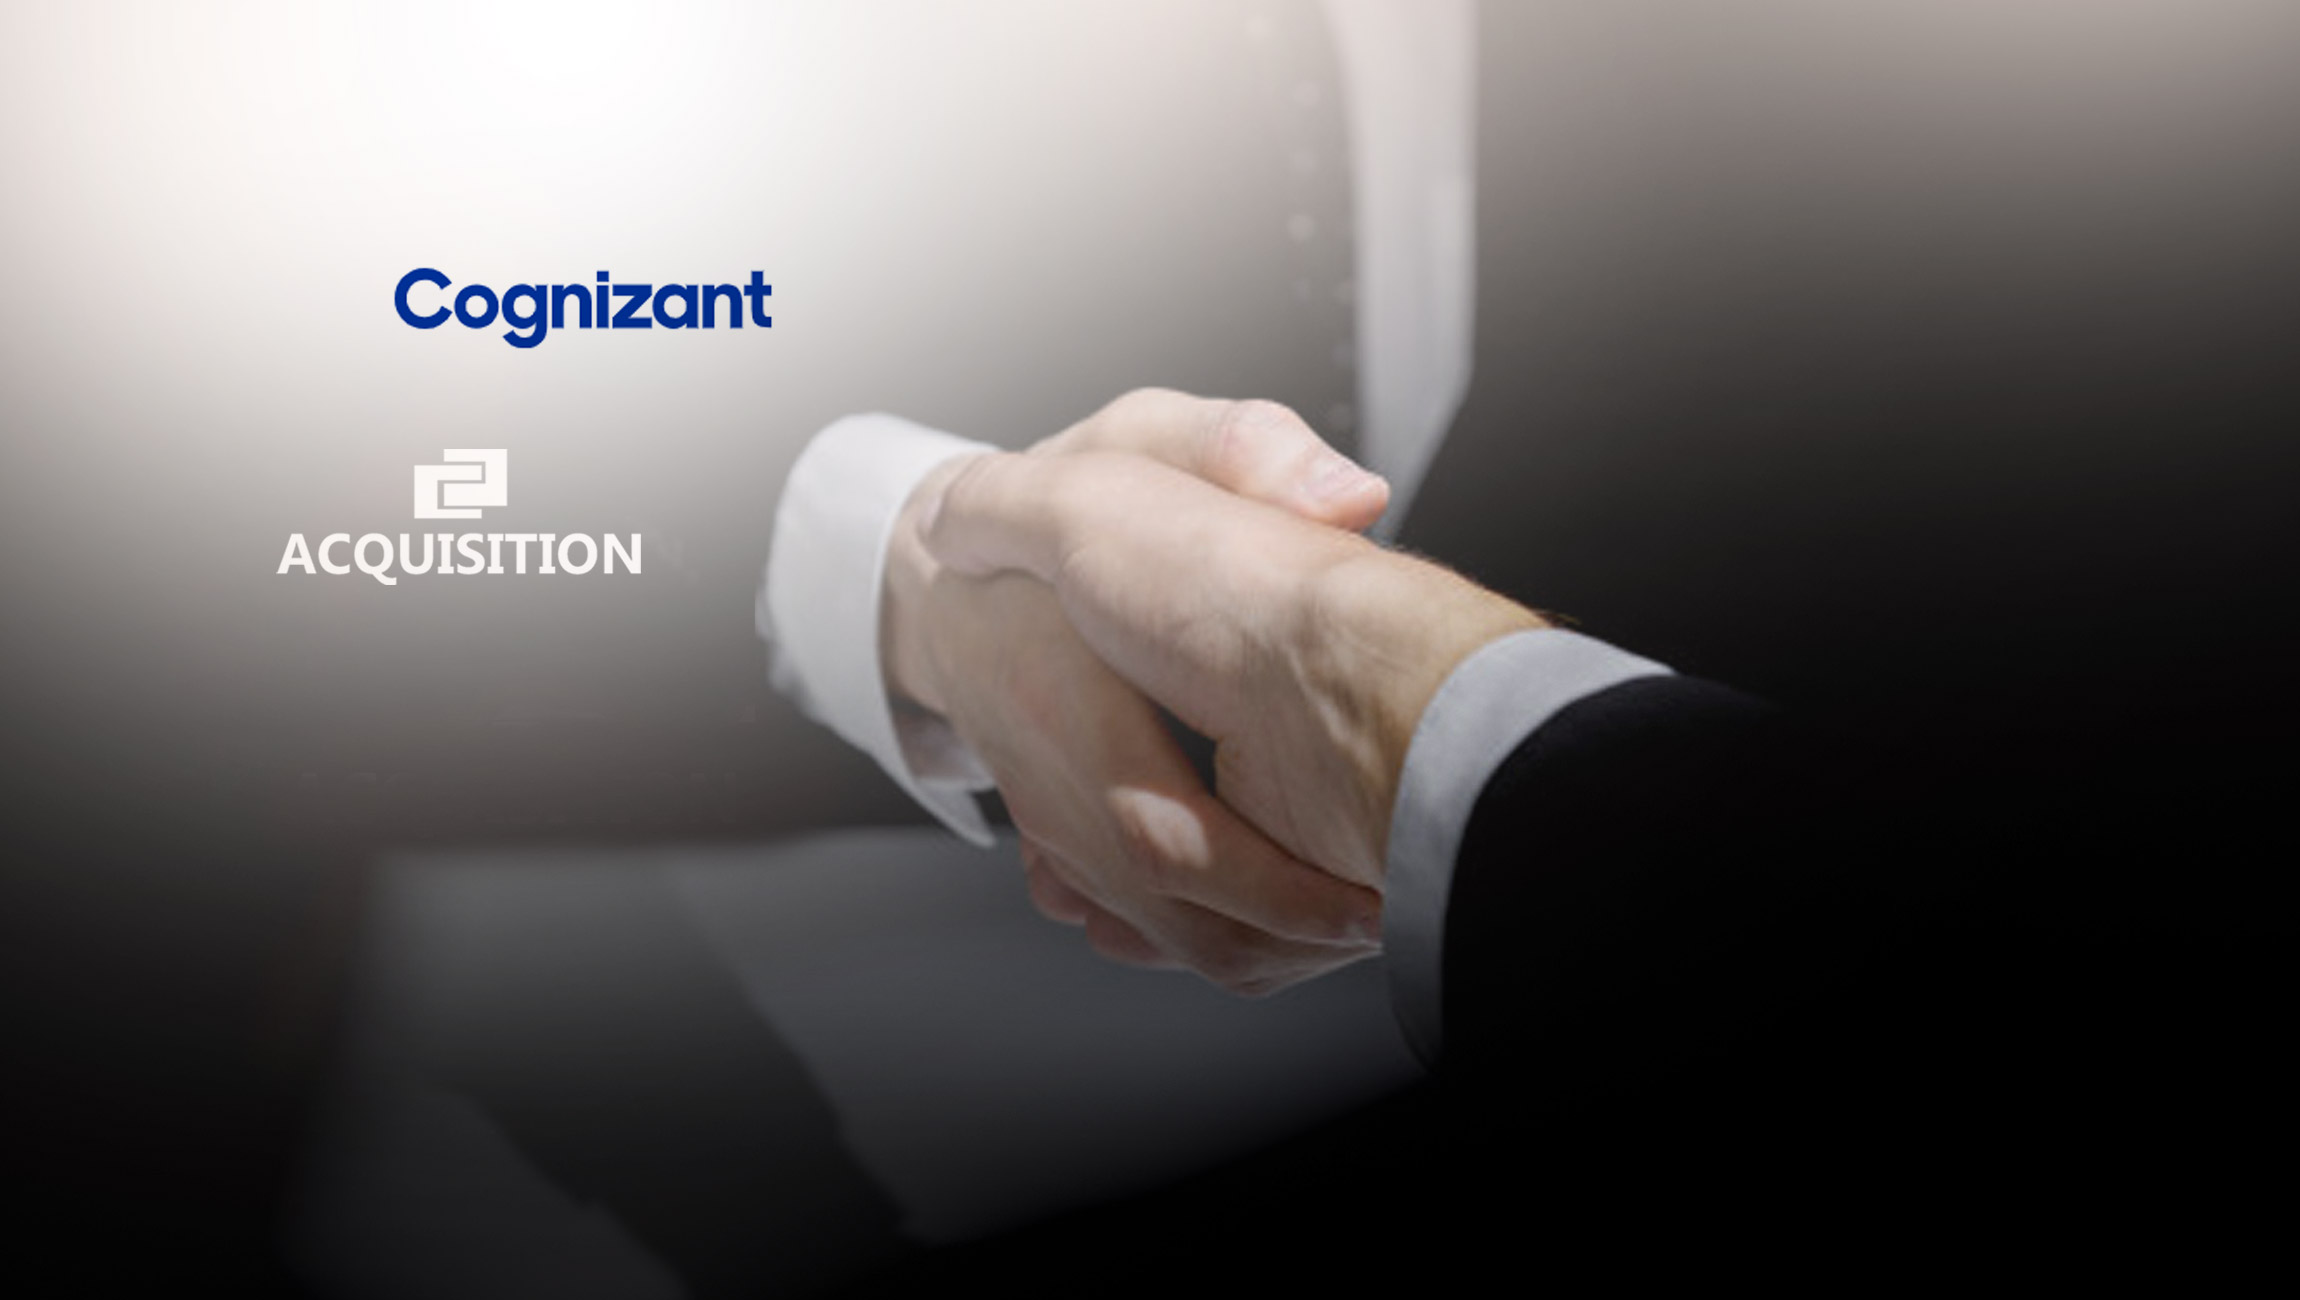 Cognizant to Acquire Bright Wolf, Accelerating Growth in Industrial Internet of Things Services